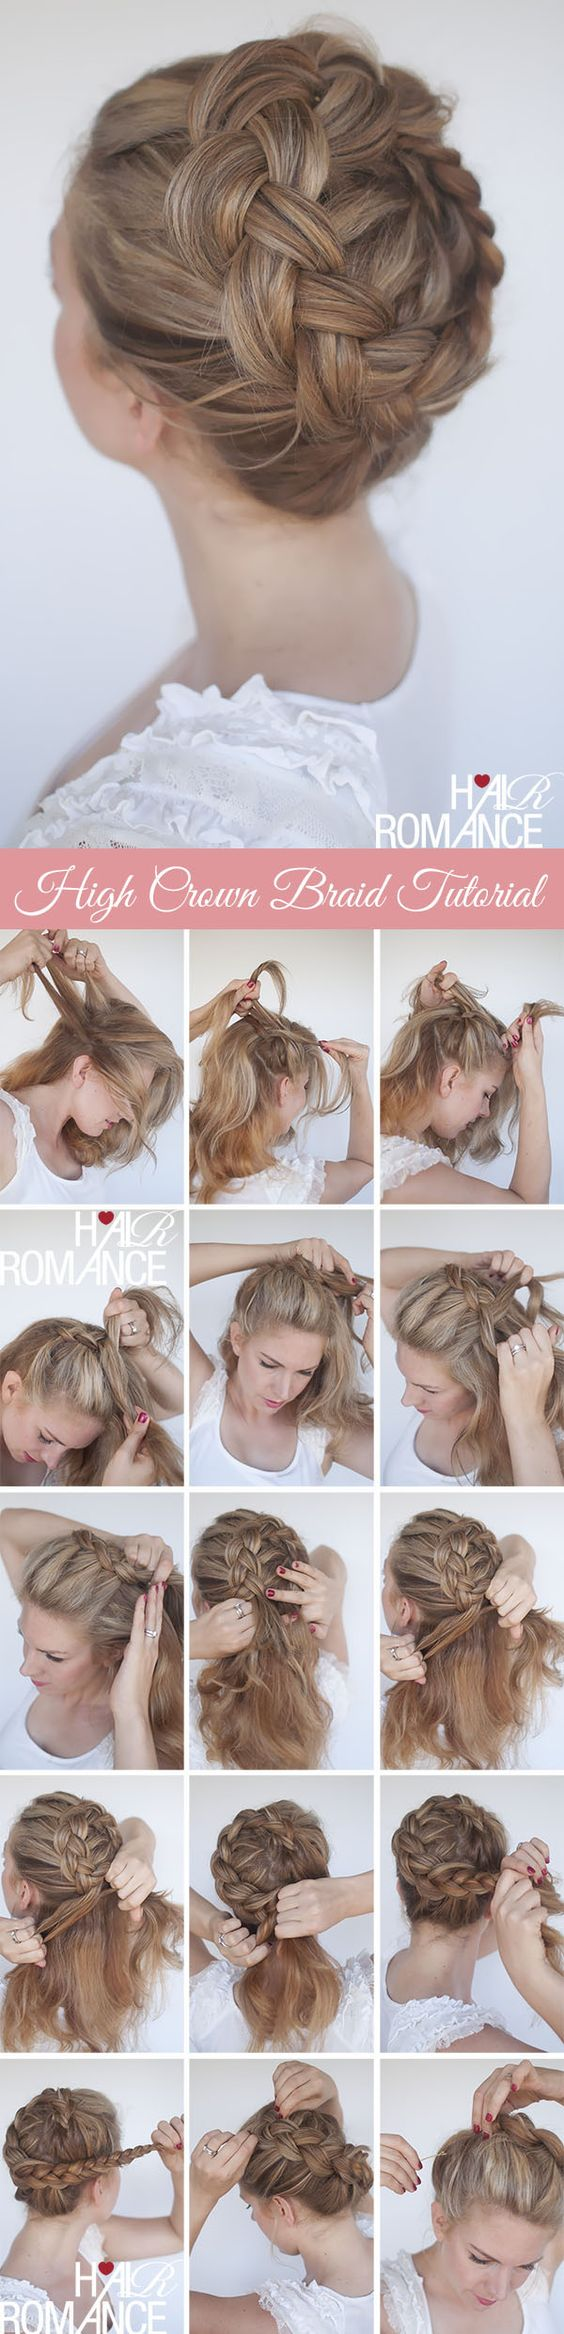 How to do a Braided Crown tutorial